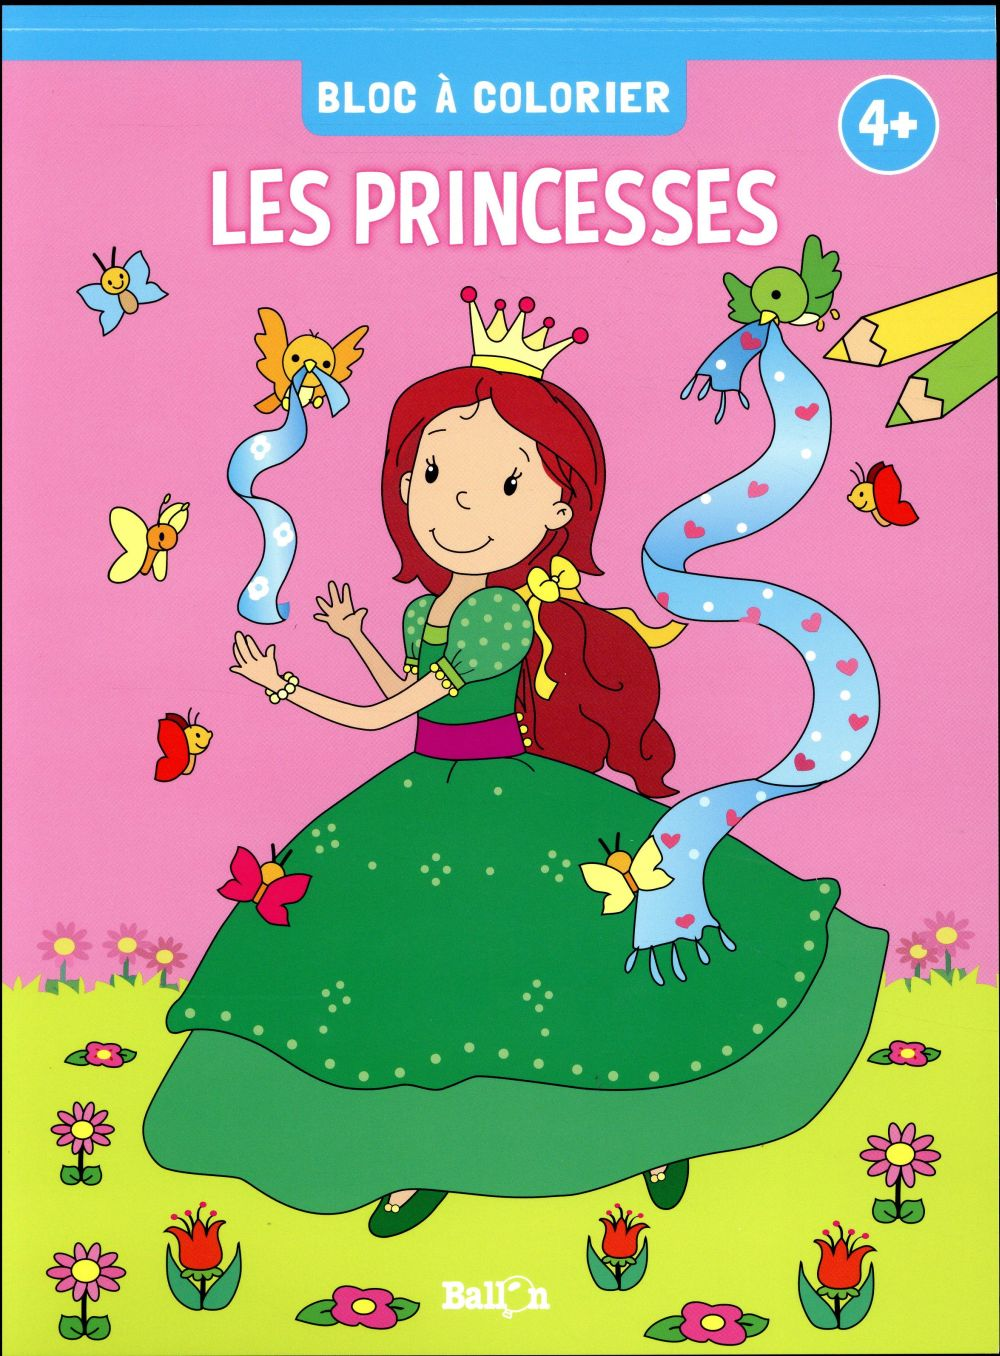 BLOC A COLORIER - LES PRINCESSES